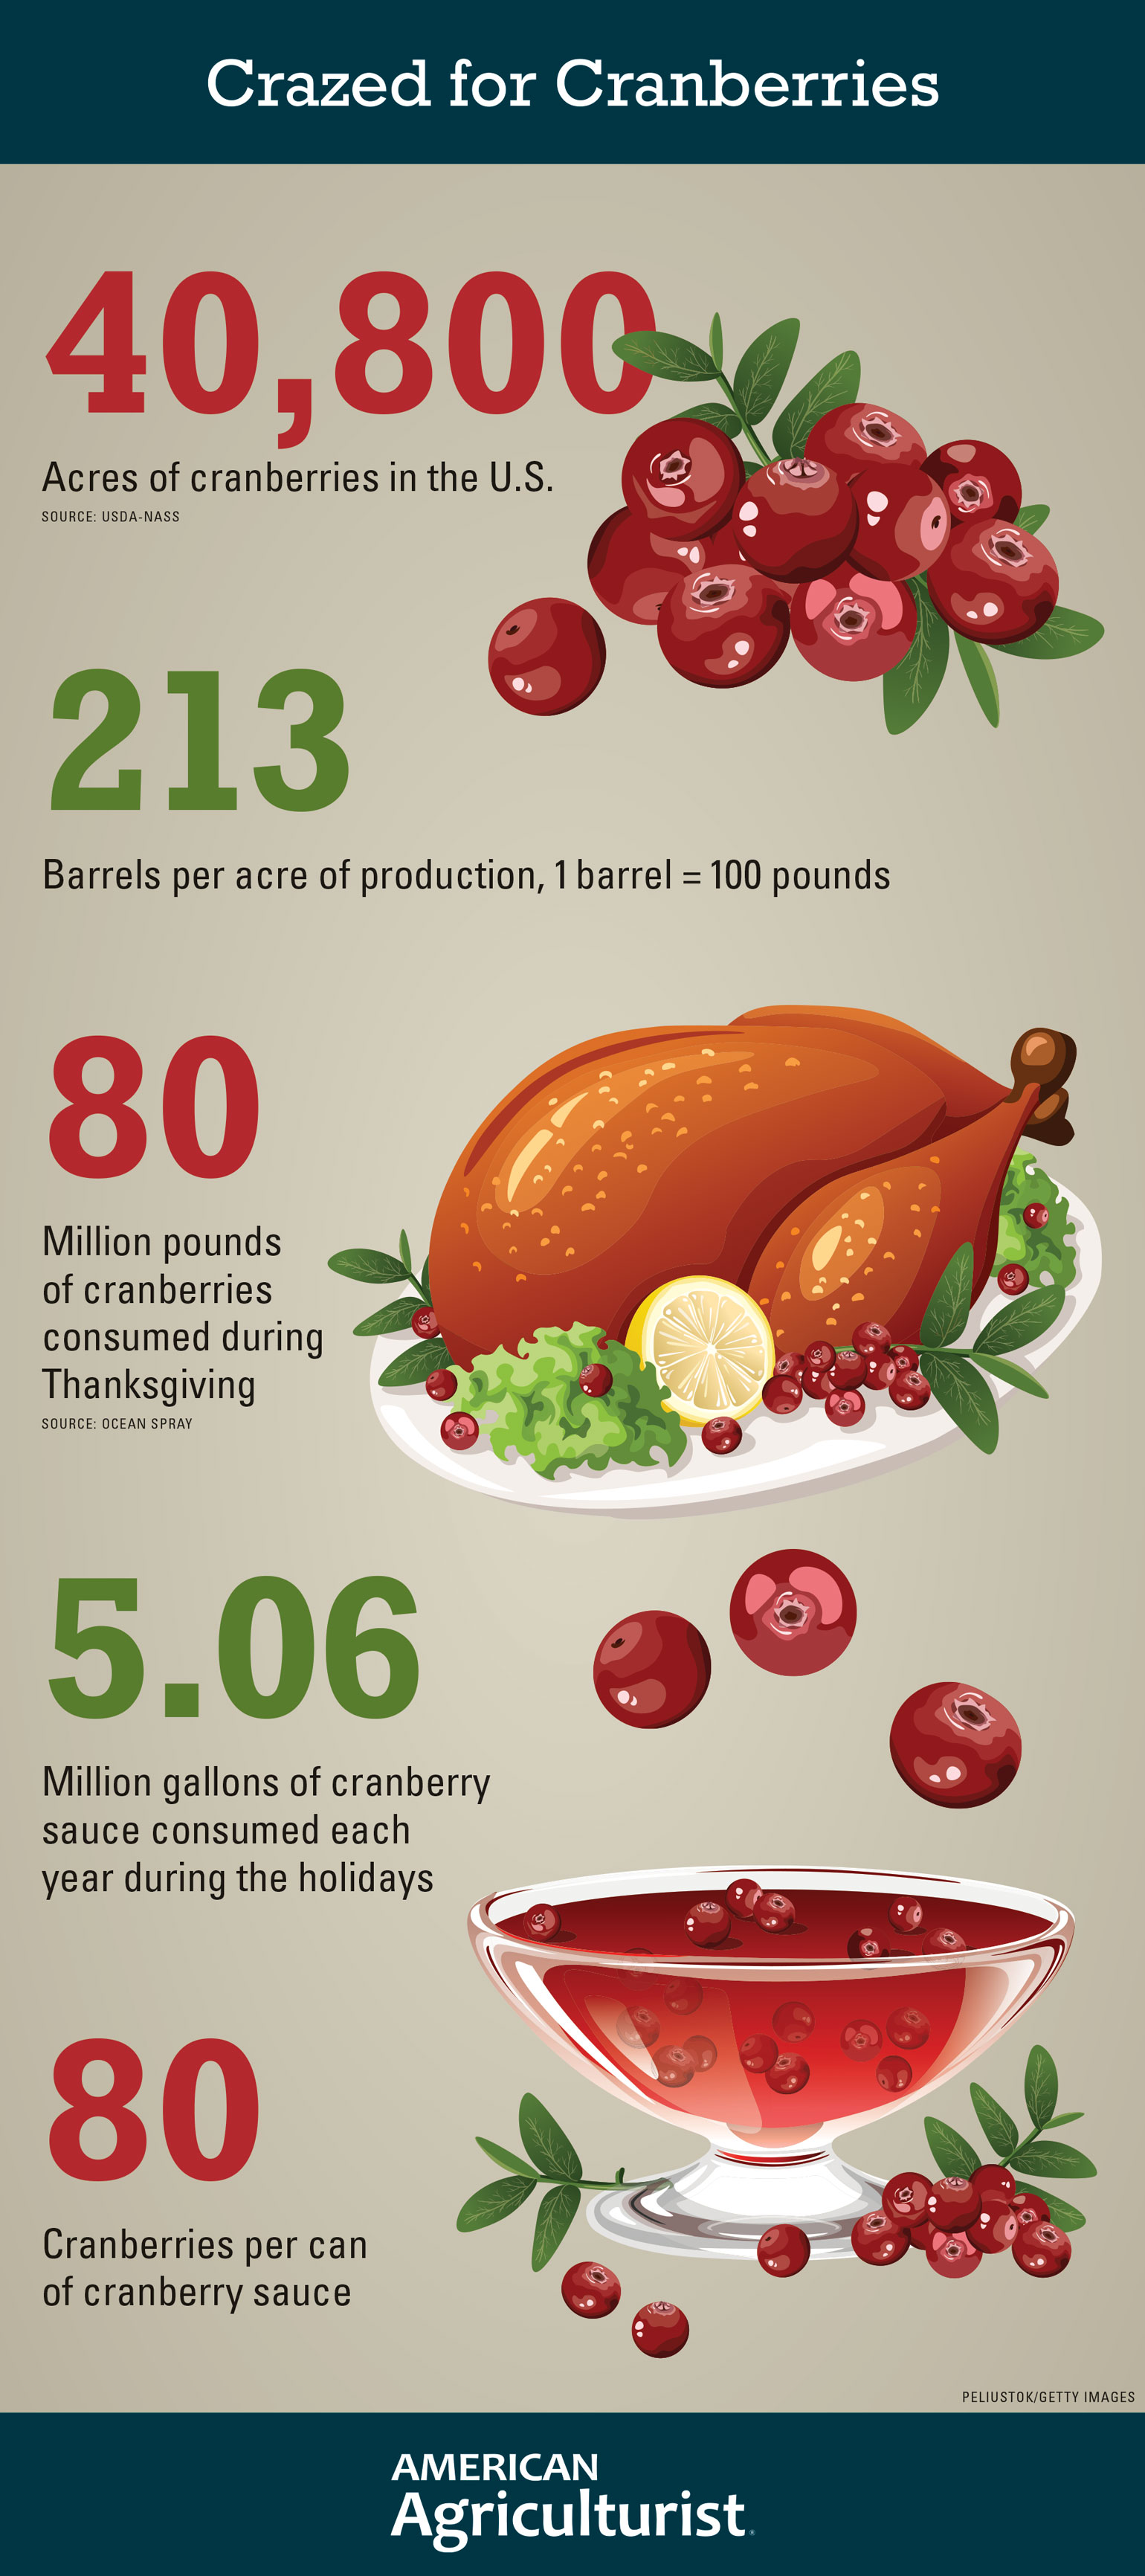 Infographic shows statistics on U.S. production of cranberries